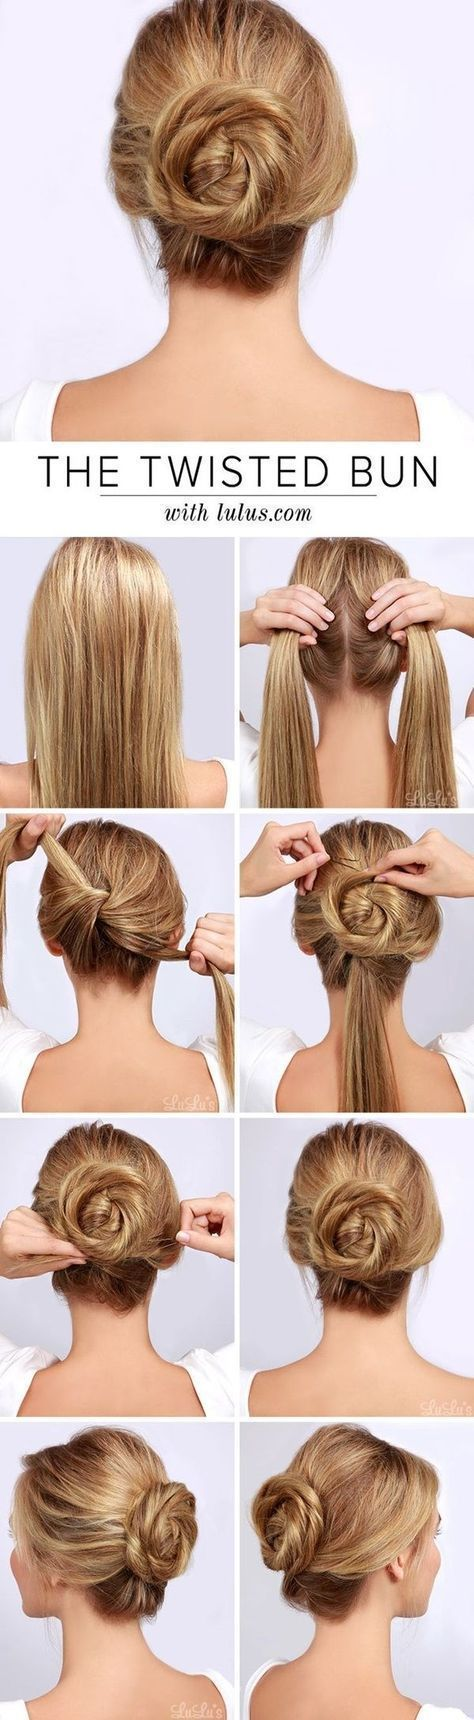 Rosy twisted bun easy hairstyles for women quick and easy